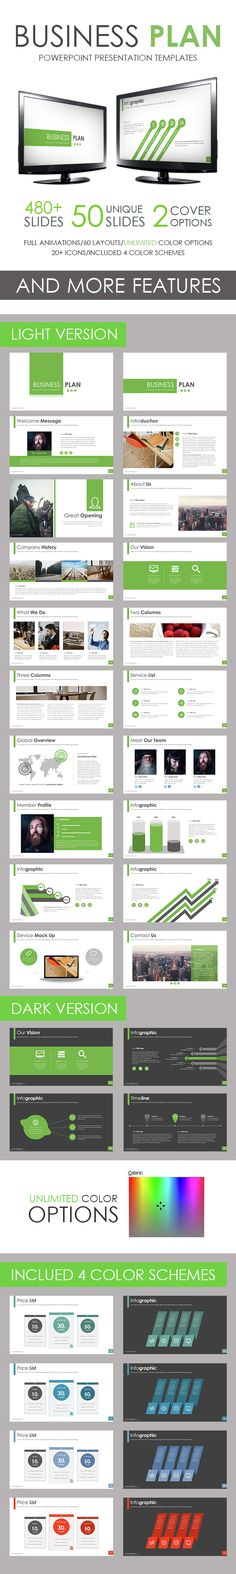 Business proposal powerpoint template pinterest business business plan powerpoint template wajeb